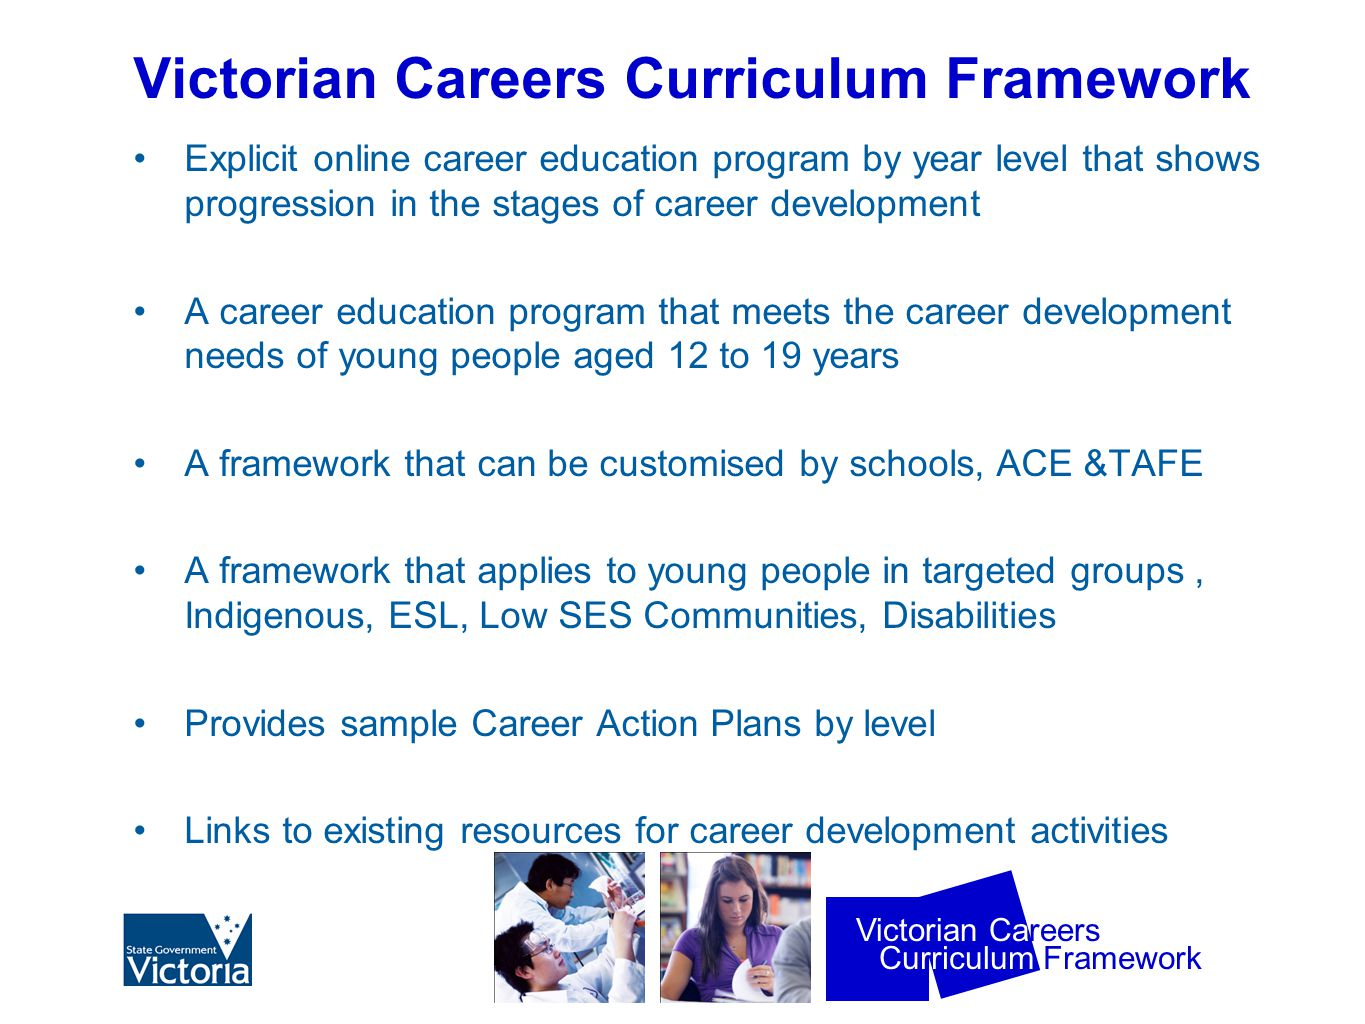 Curriculum Framework Victorian Careers Victorian Careers Curriculum Framework Explicit online career education program by year level that shows progre